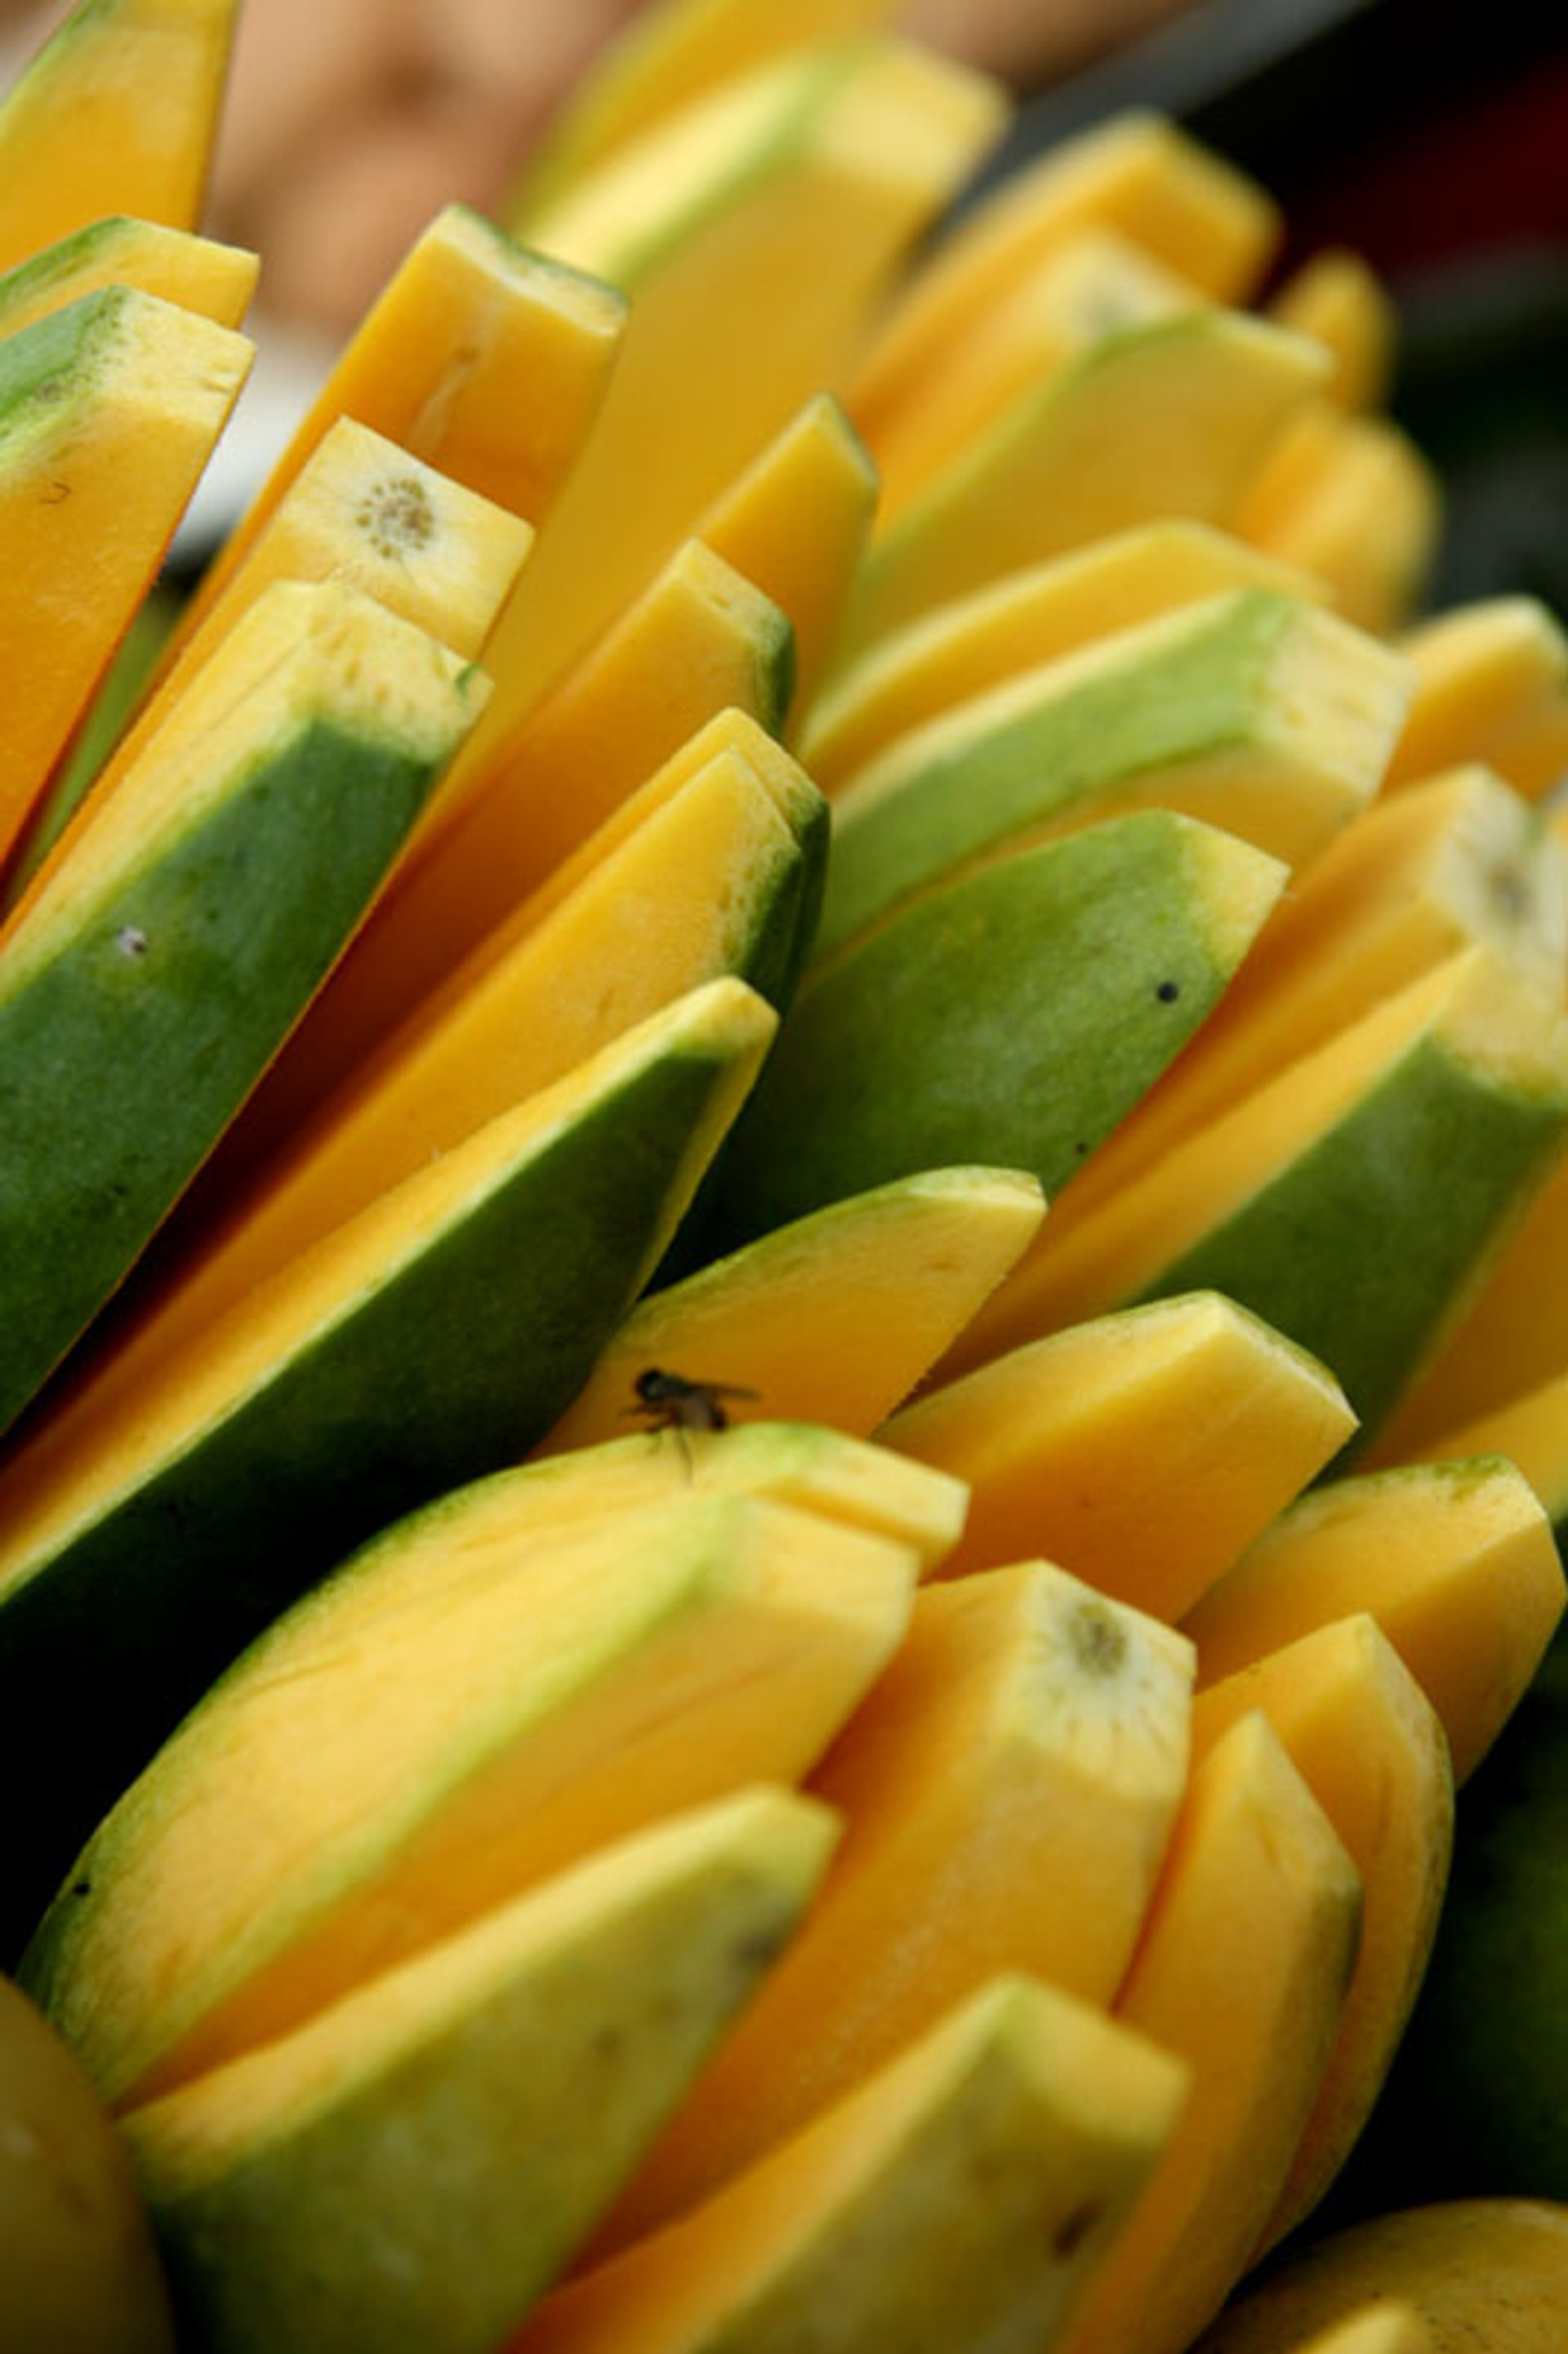 Best time for Mango Season in Cambodia